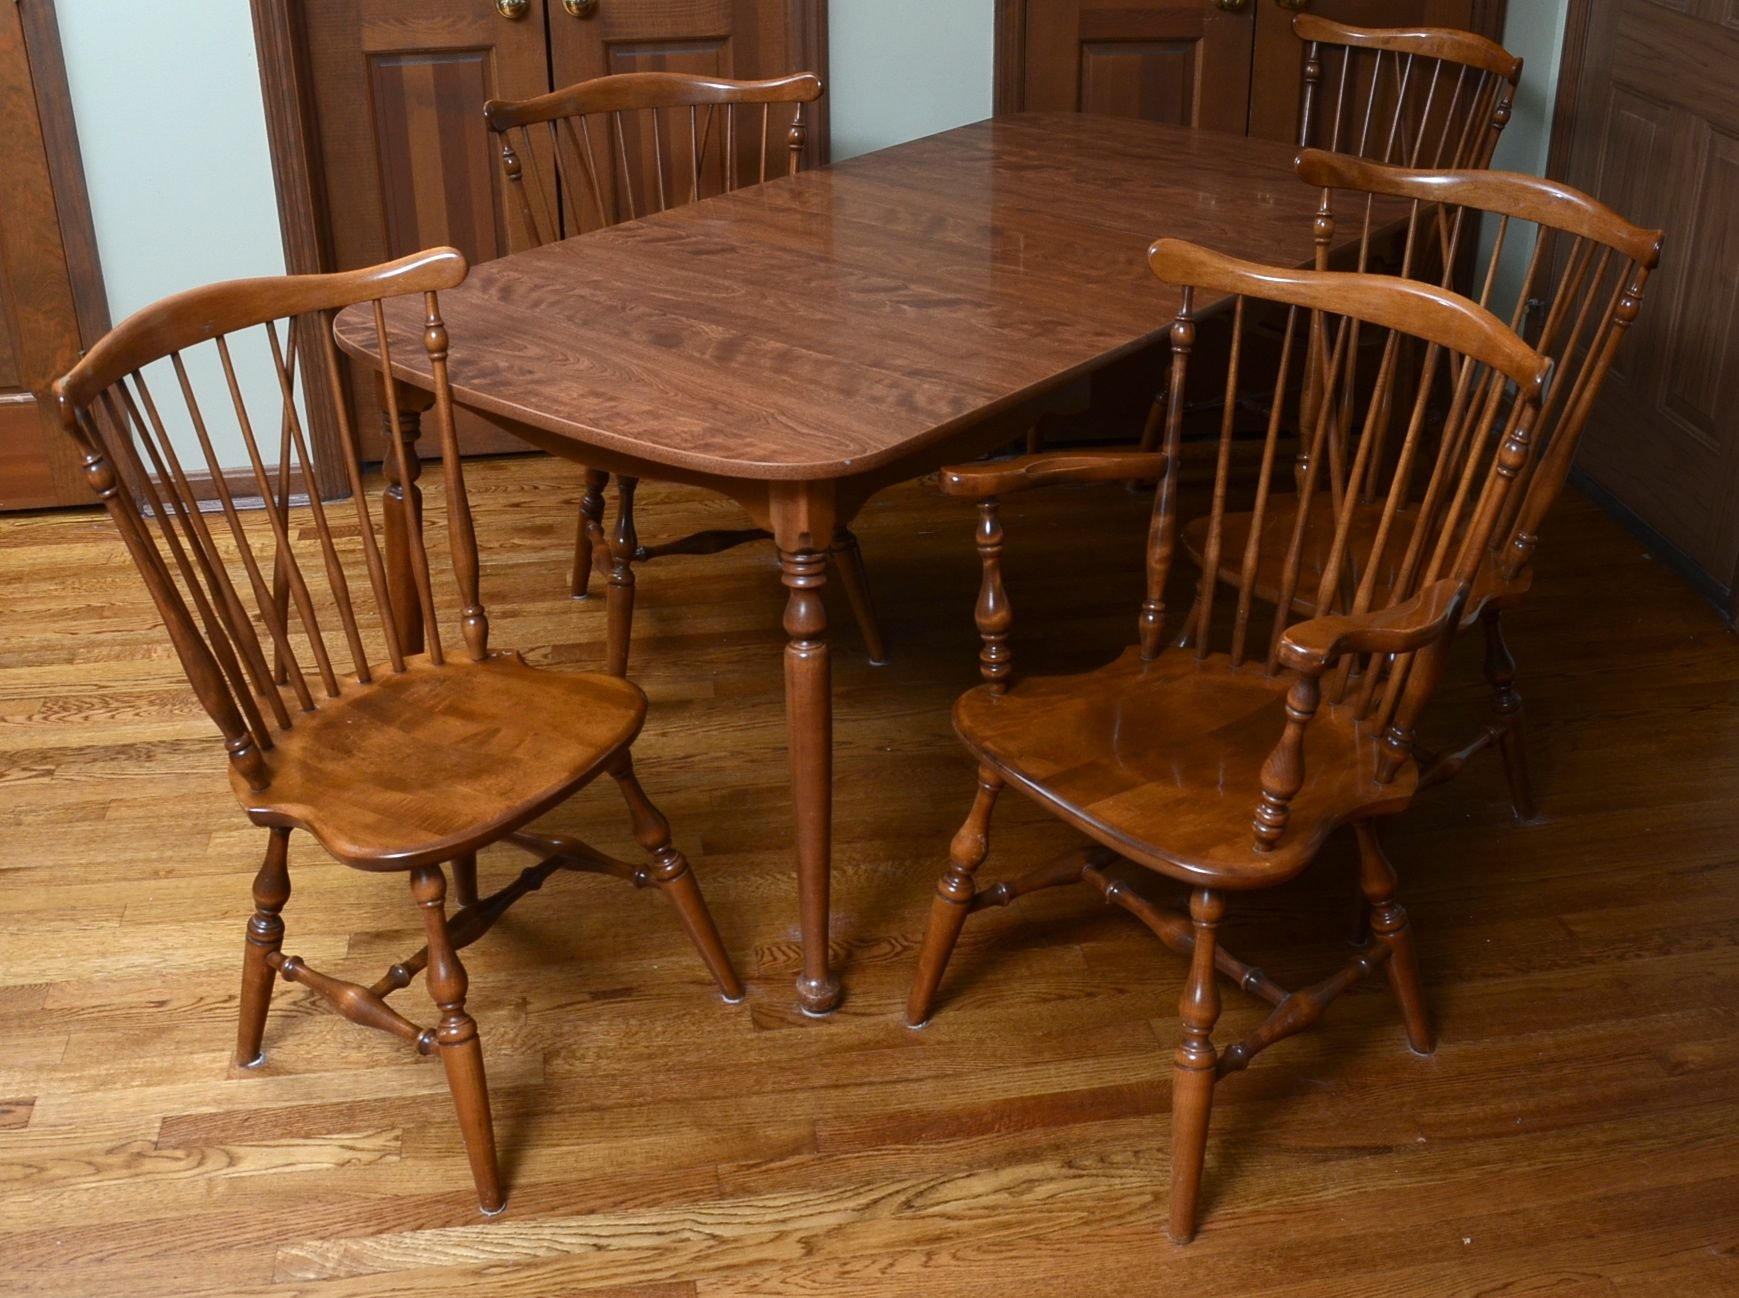 Ethan Allen Dining Table And Chairs ...